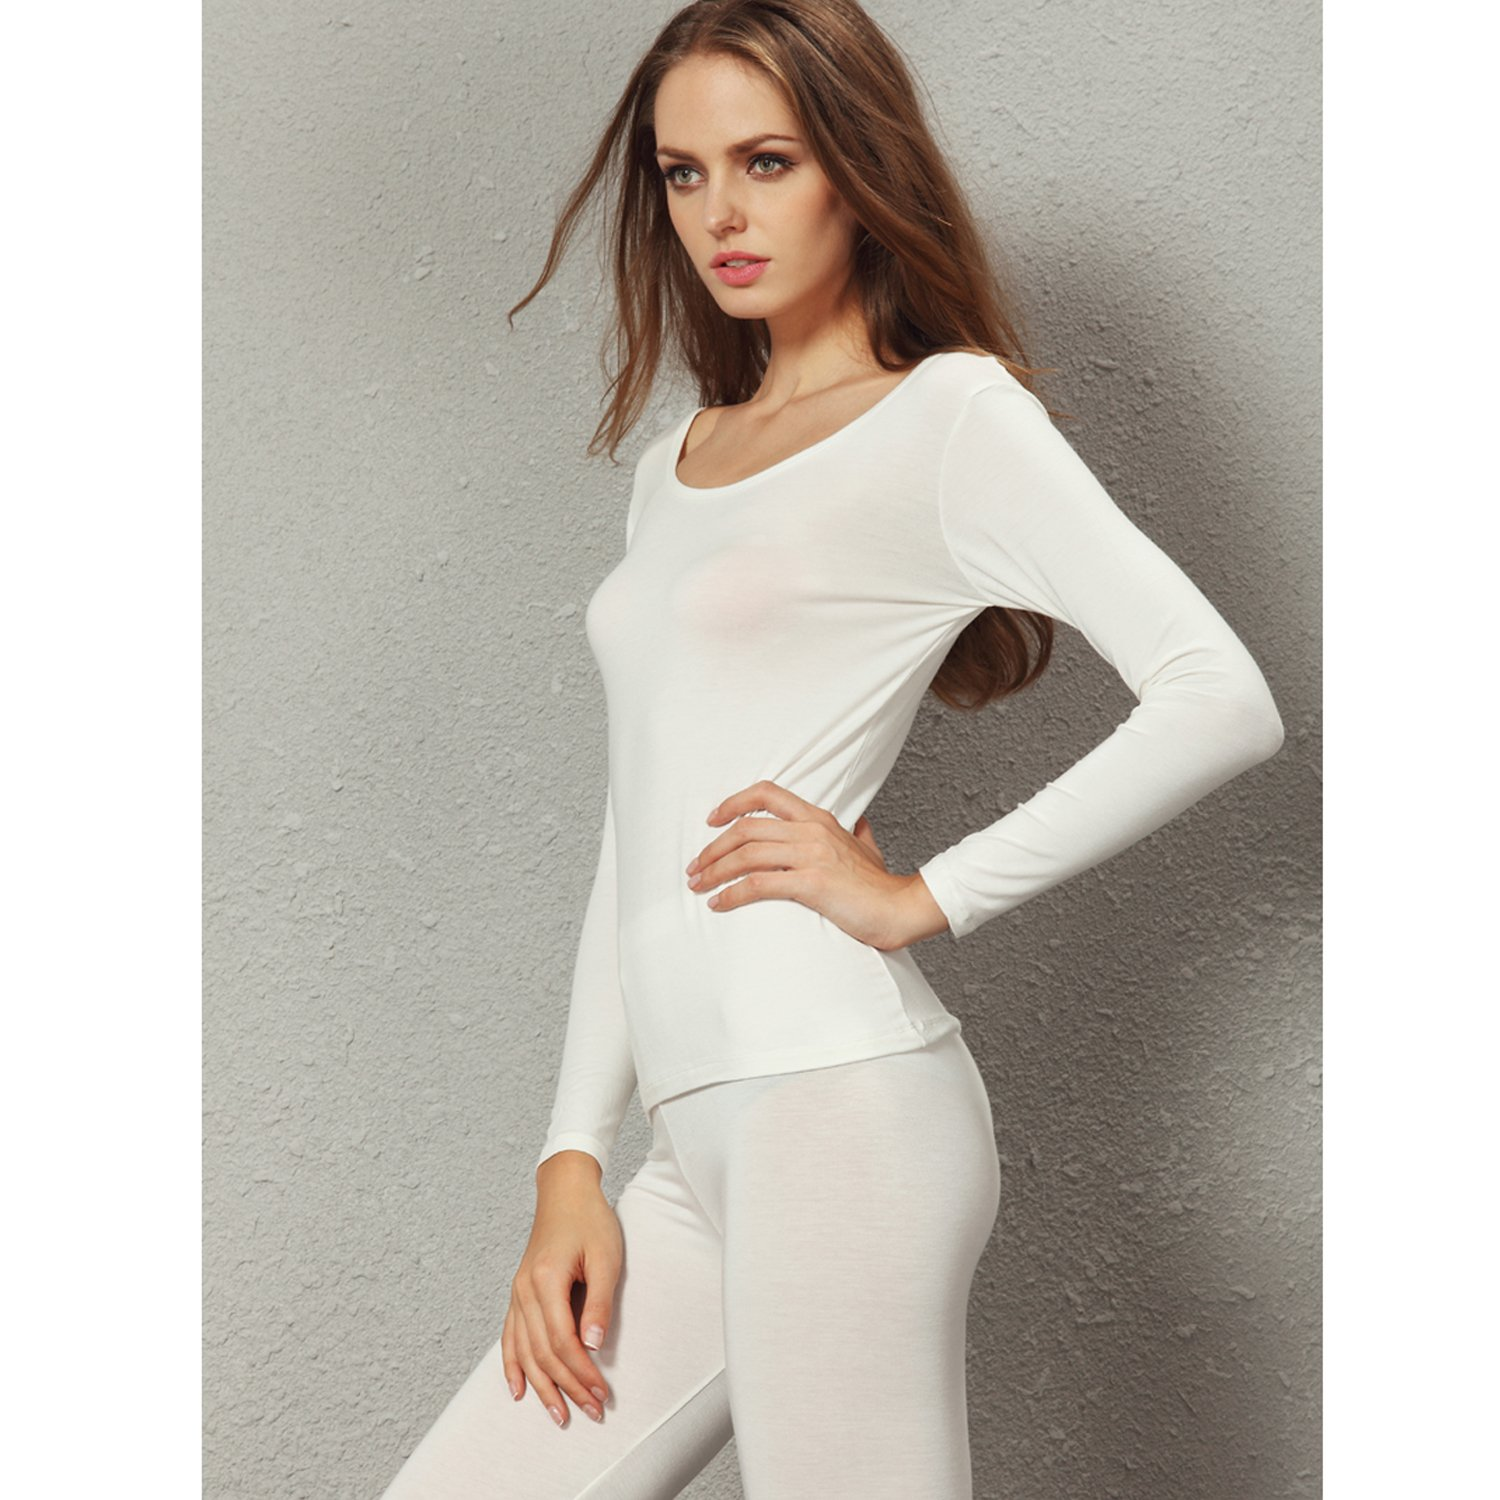 Liang Rou Womens Scoop Neck Top /& Bottom Ultra Thin Thermal Underwear Set